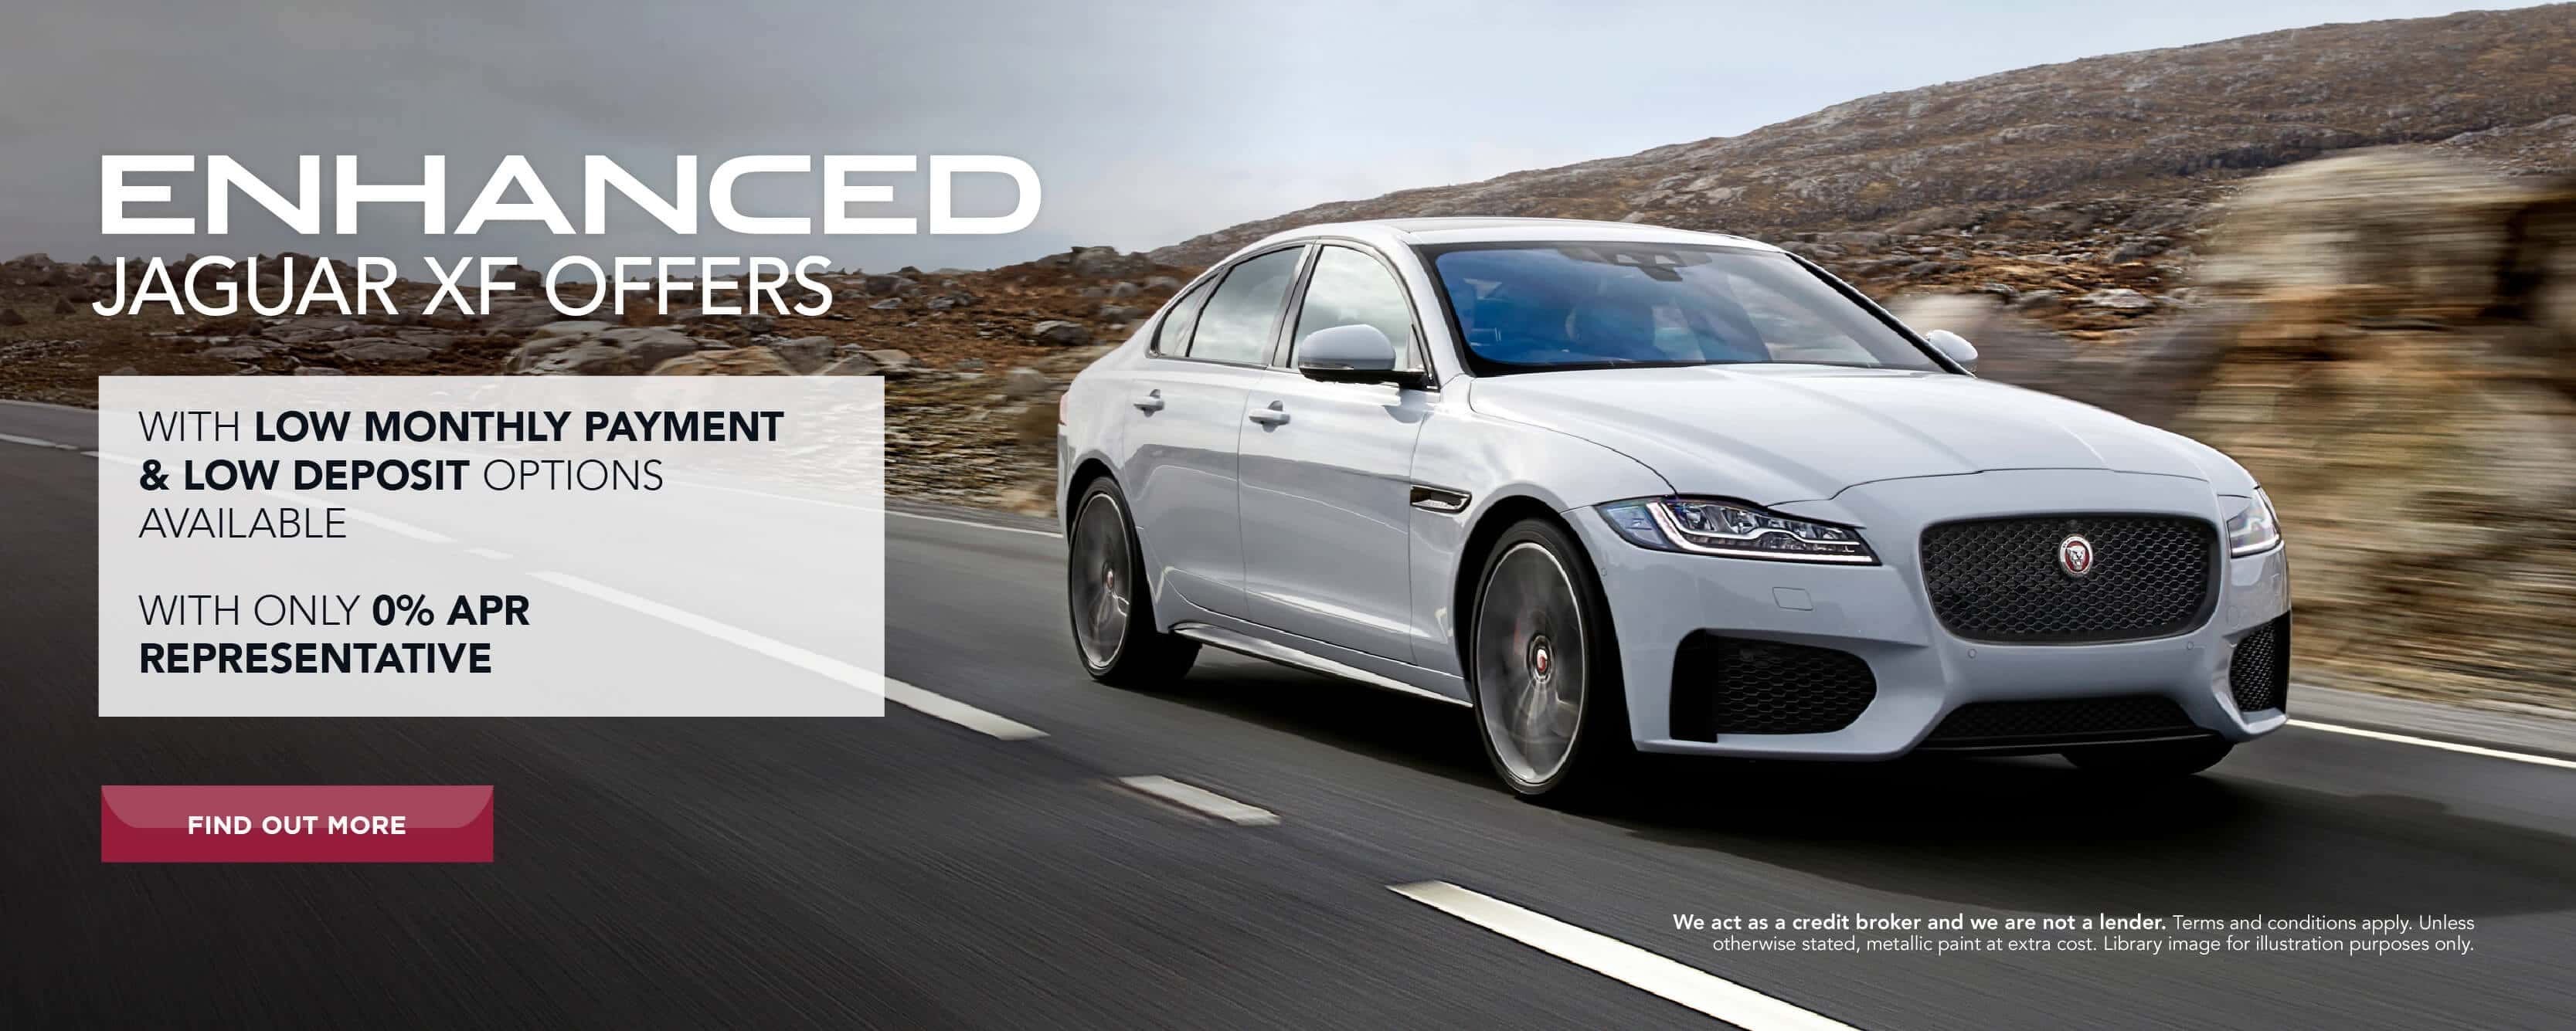 Jaguar enhanced XF offers BB